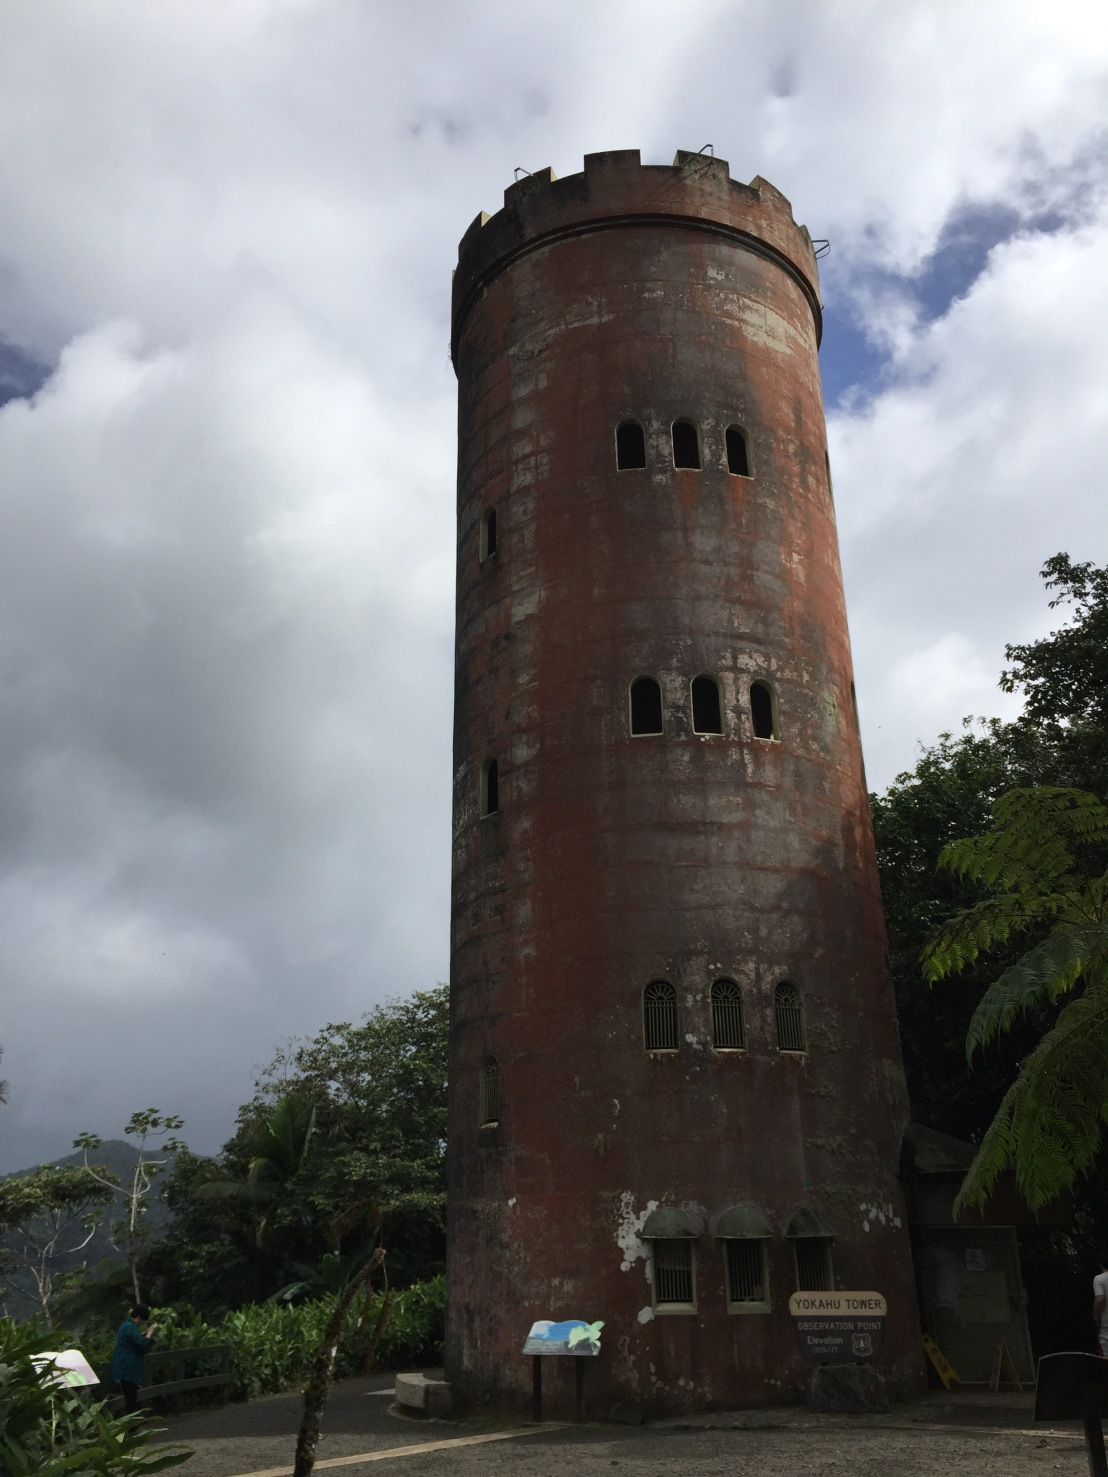 Tower in the rainforest